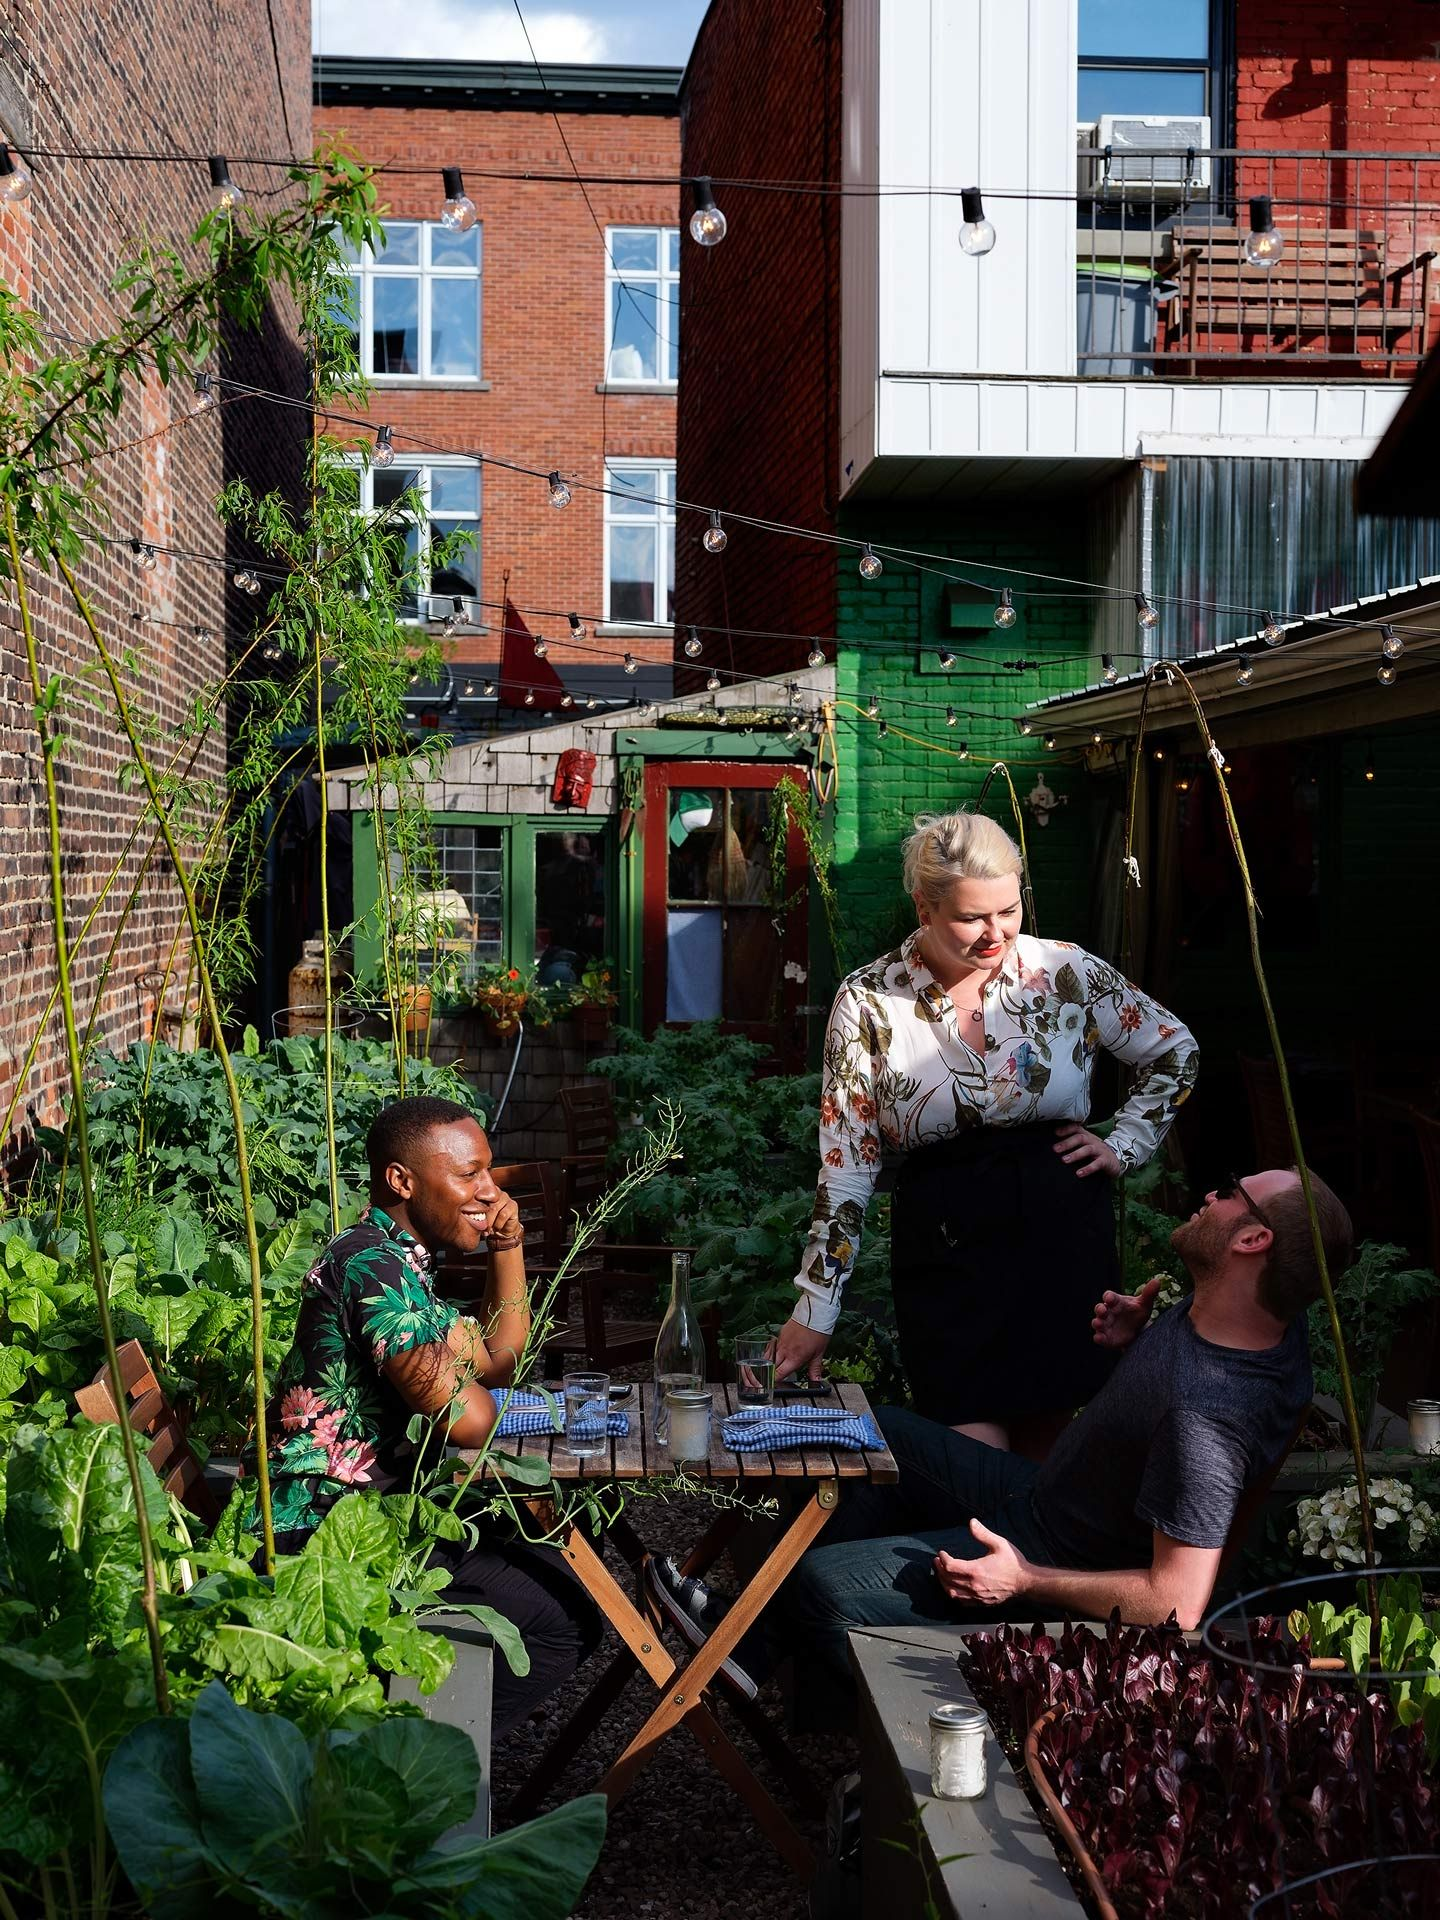 two man sitting at small wooden table in vegetable garden with woman standing with them talking photographed by Guillaume Simoneau as part of Off Duty Montreal series for The Wall Street Journal magazine